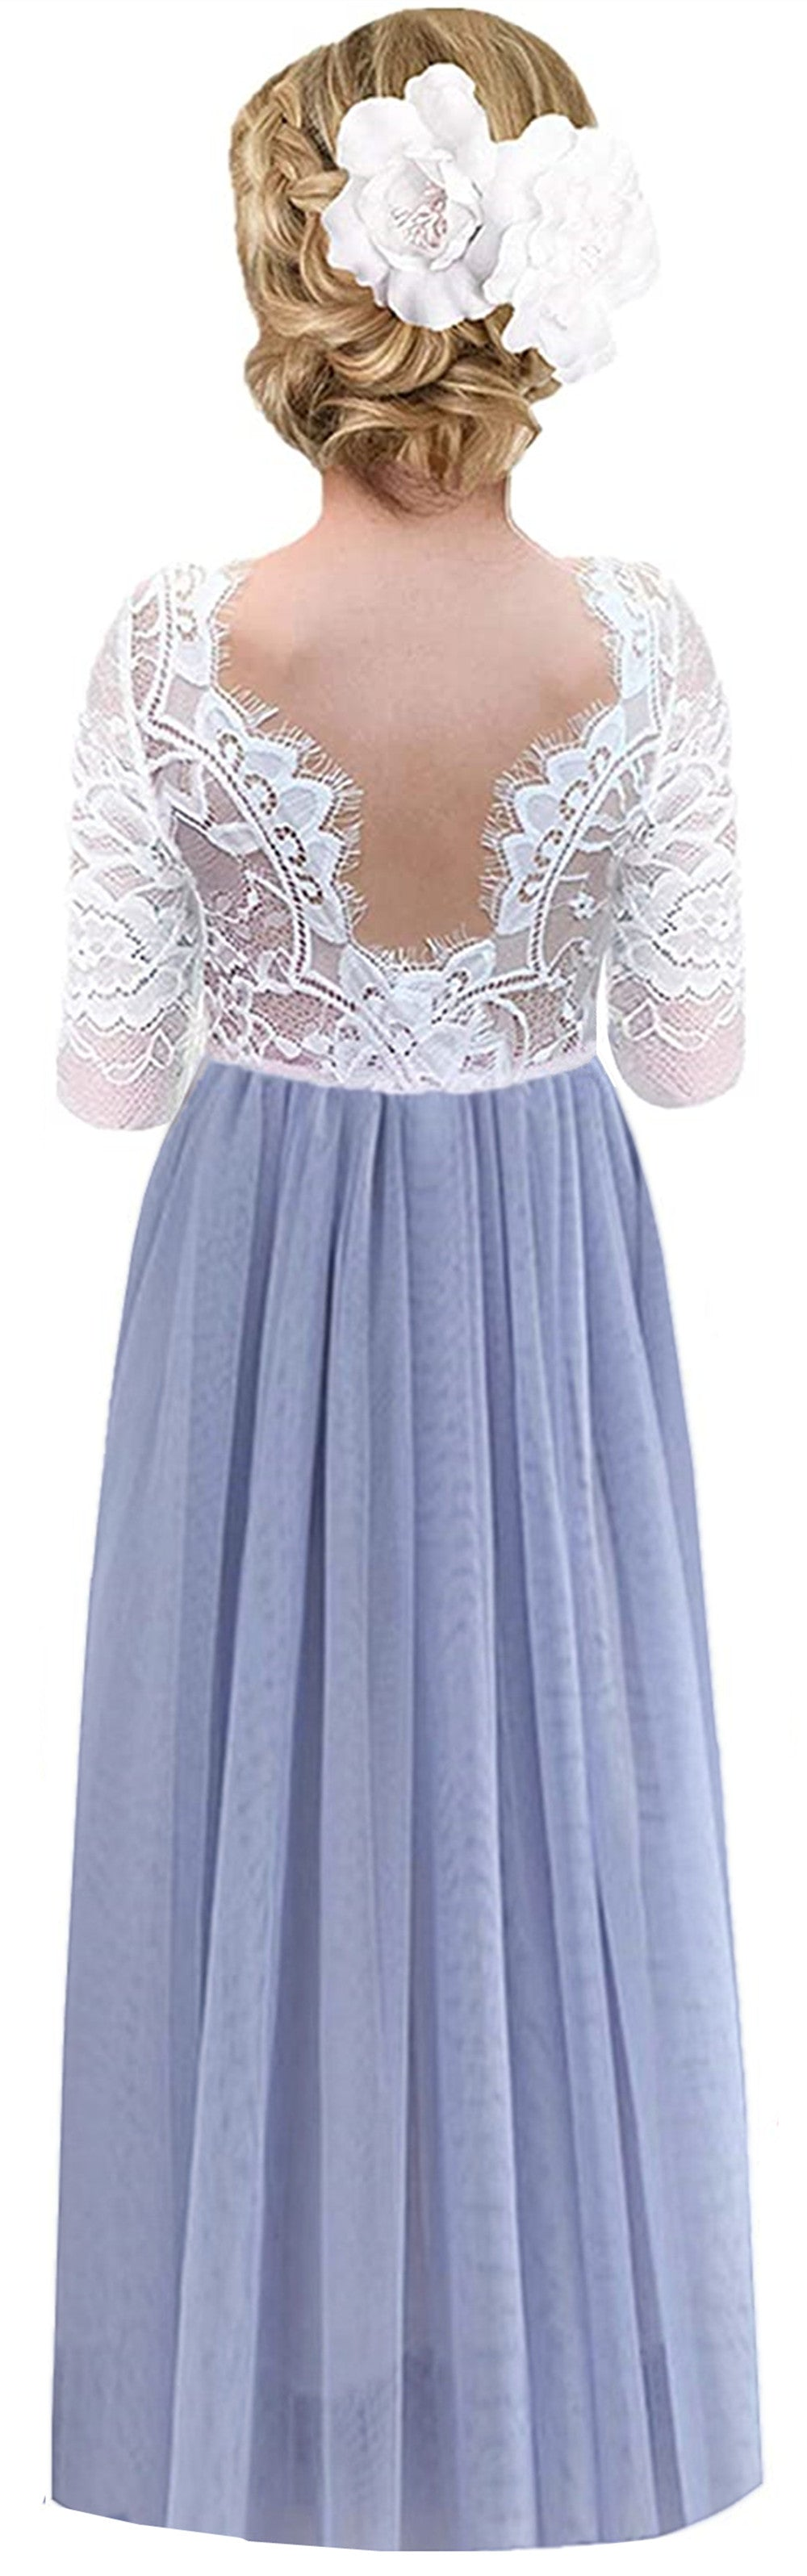 2BUNNIES Girl Rose Lace Back Long Sleeve Maxi Straight Dress (Bluish Gray)